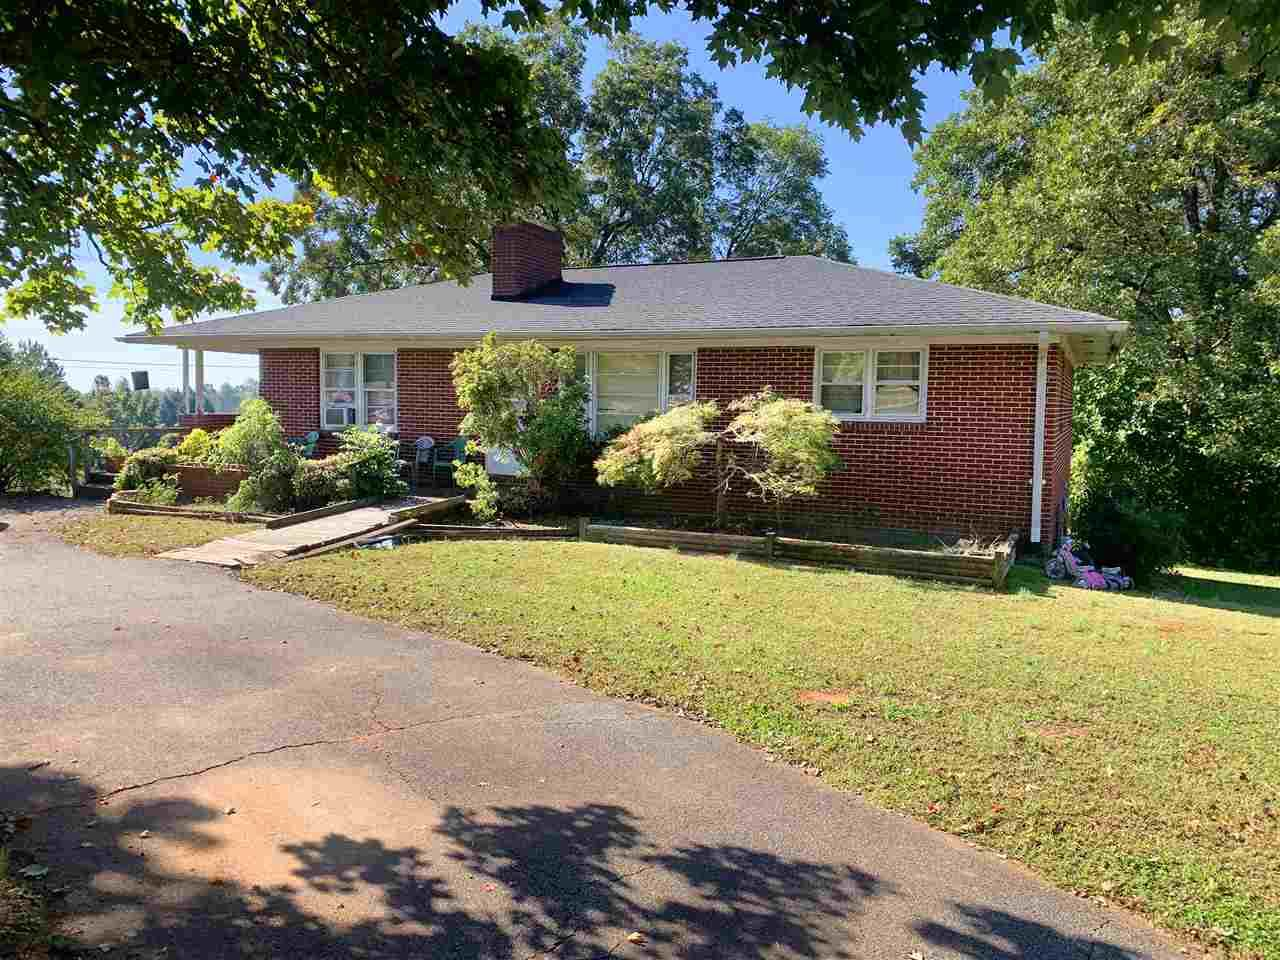 13591 Asheville Hwy - Photo 1